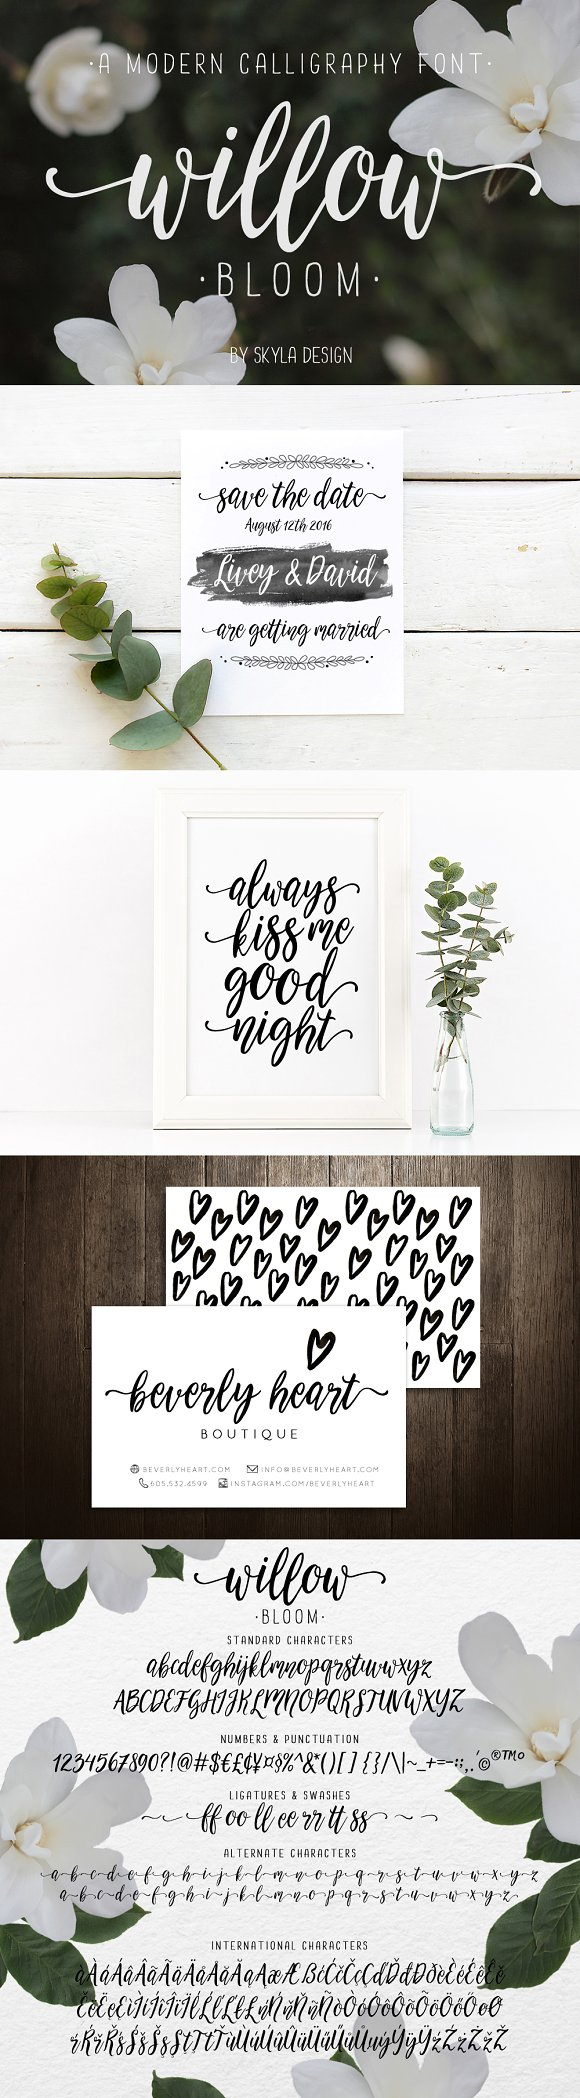 Modern calligraphy font willow bloom script fonts